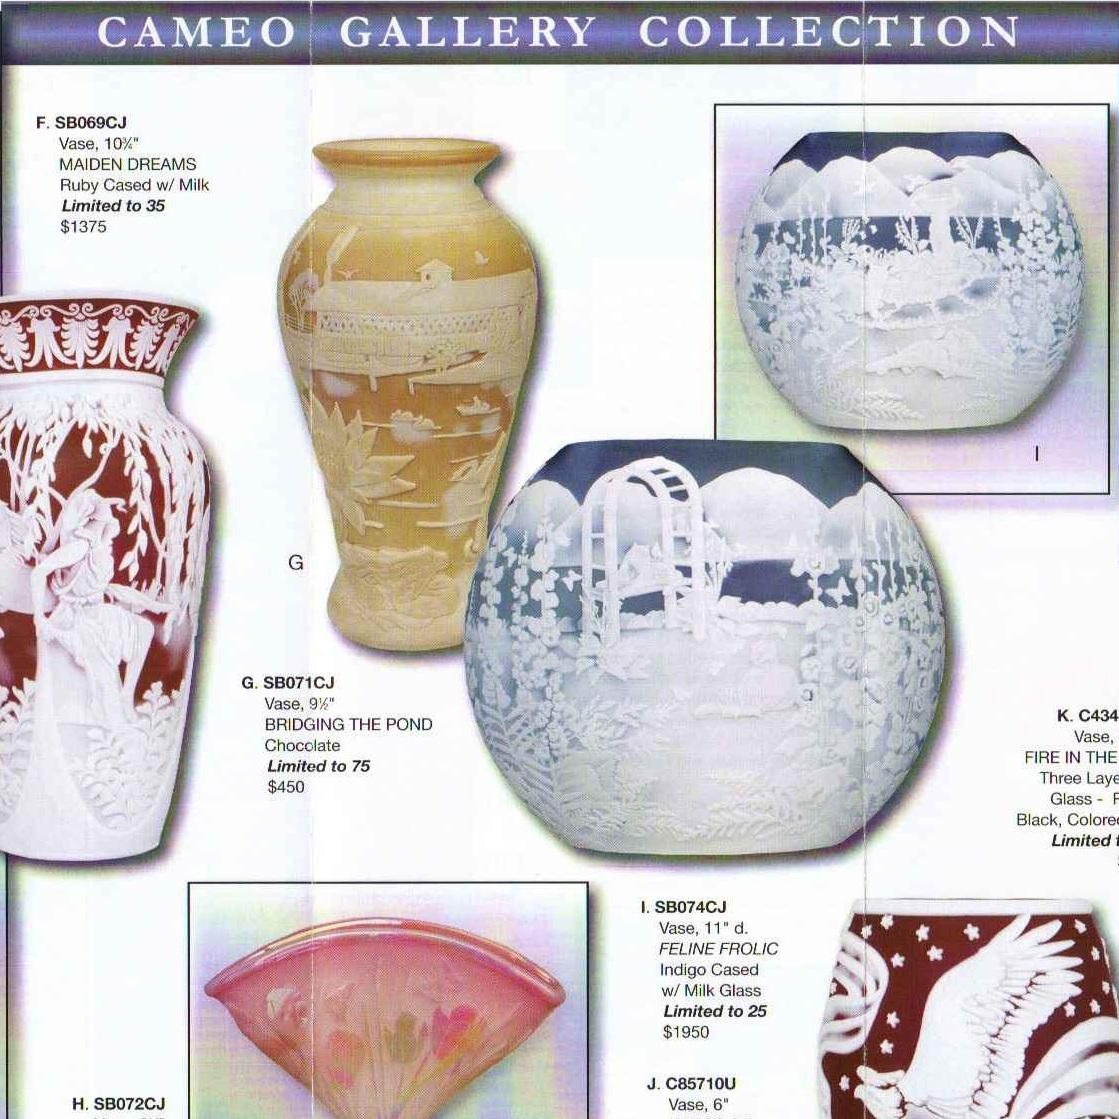 2009 Fall Cameo Gallery